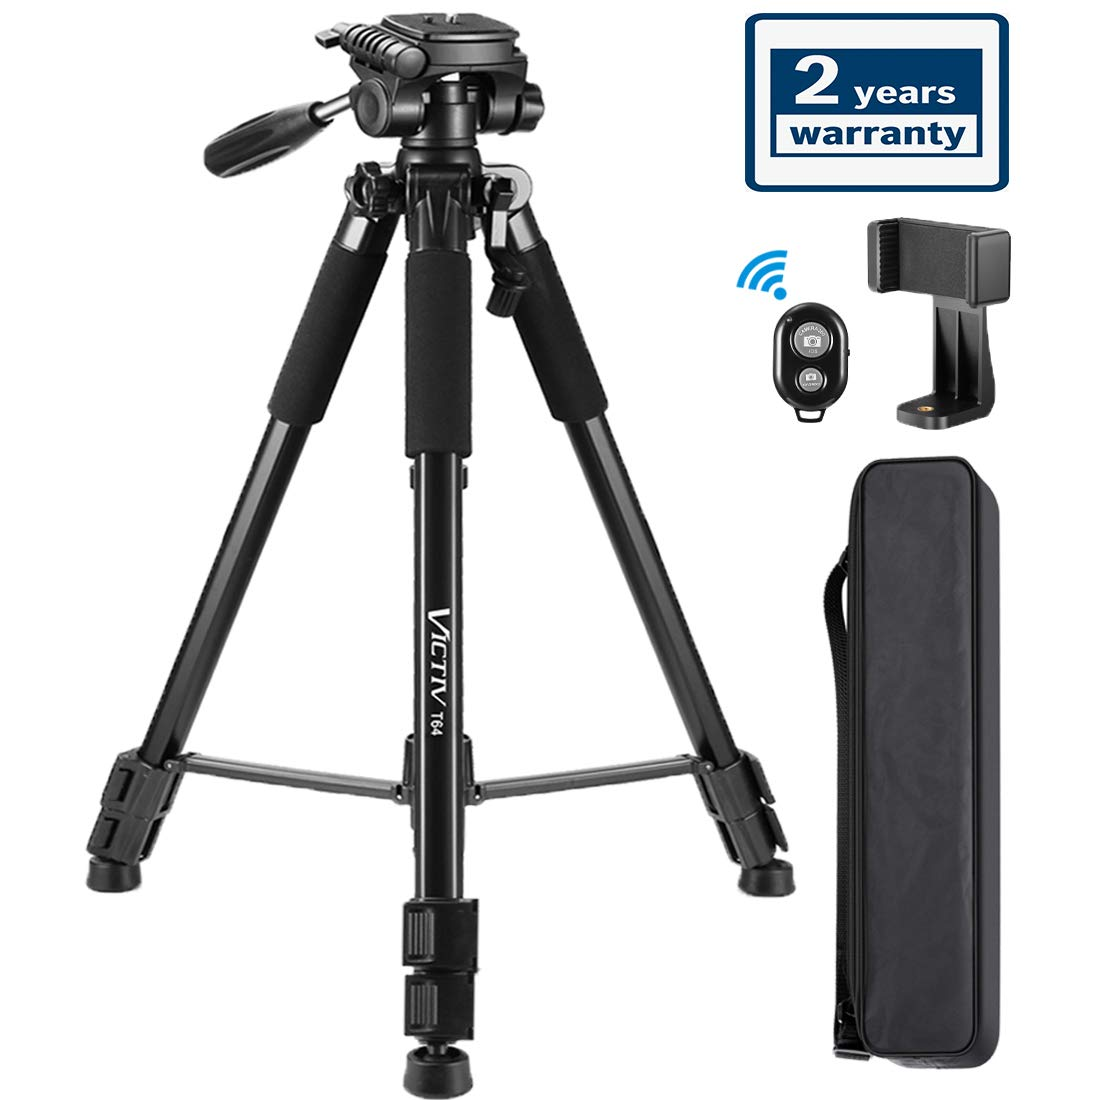 64-Inch Tripod, Camera Aluminum Tripod & Cell Phone Selfie Sticks with Phone Tripod Mount and Remote Shutter, Ideal for YouTube Videos and Instagram Facebook Live - Black by Victiv